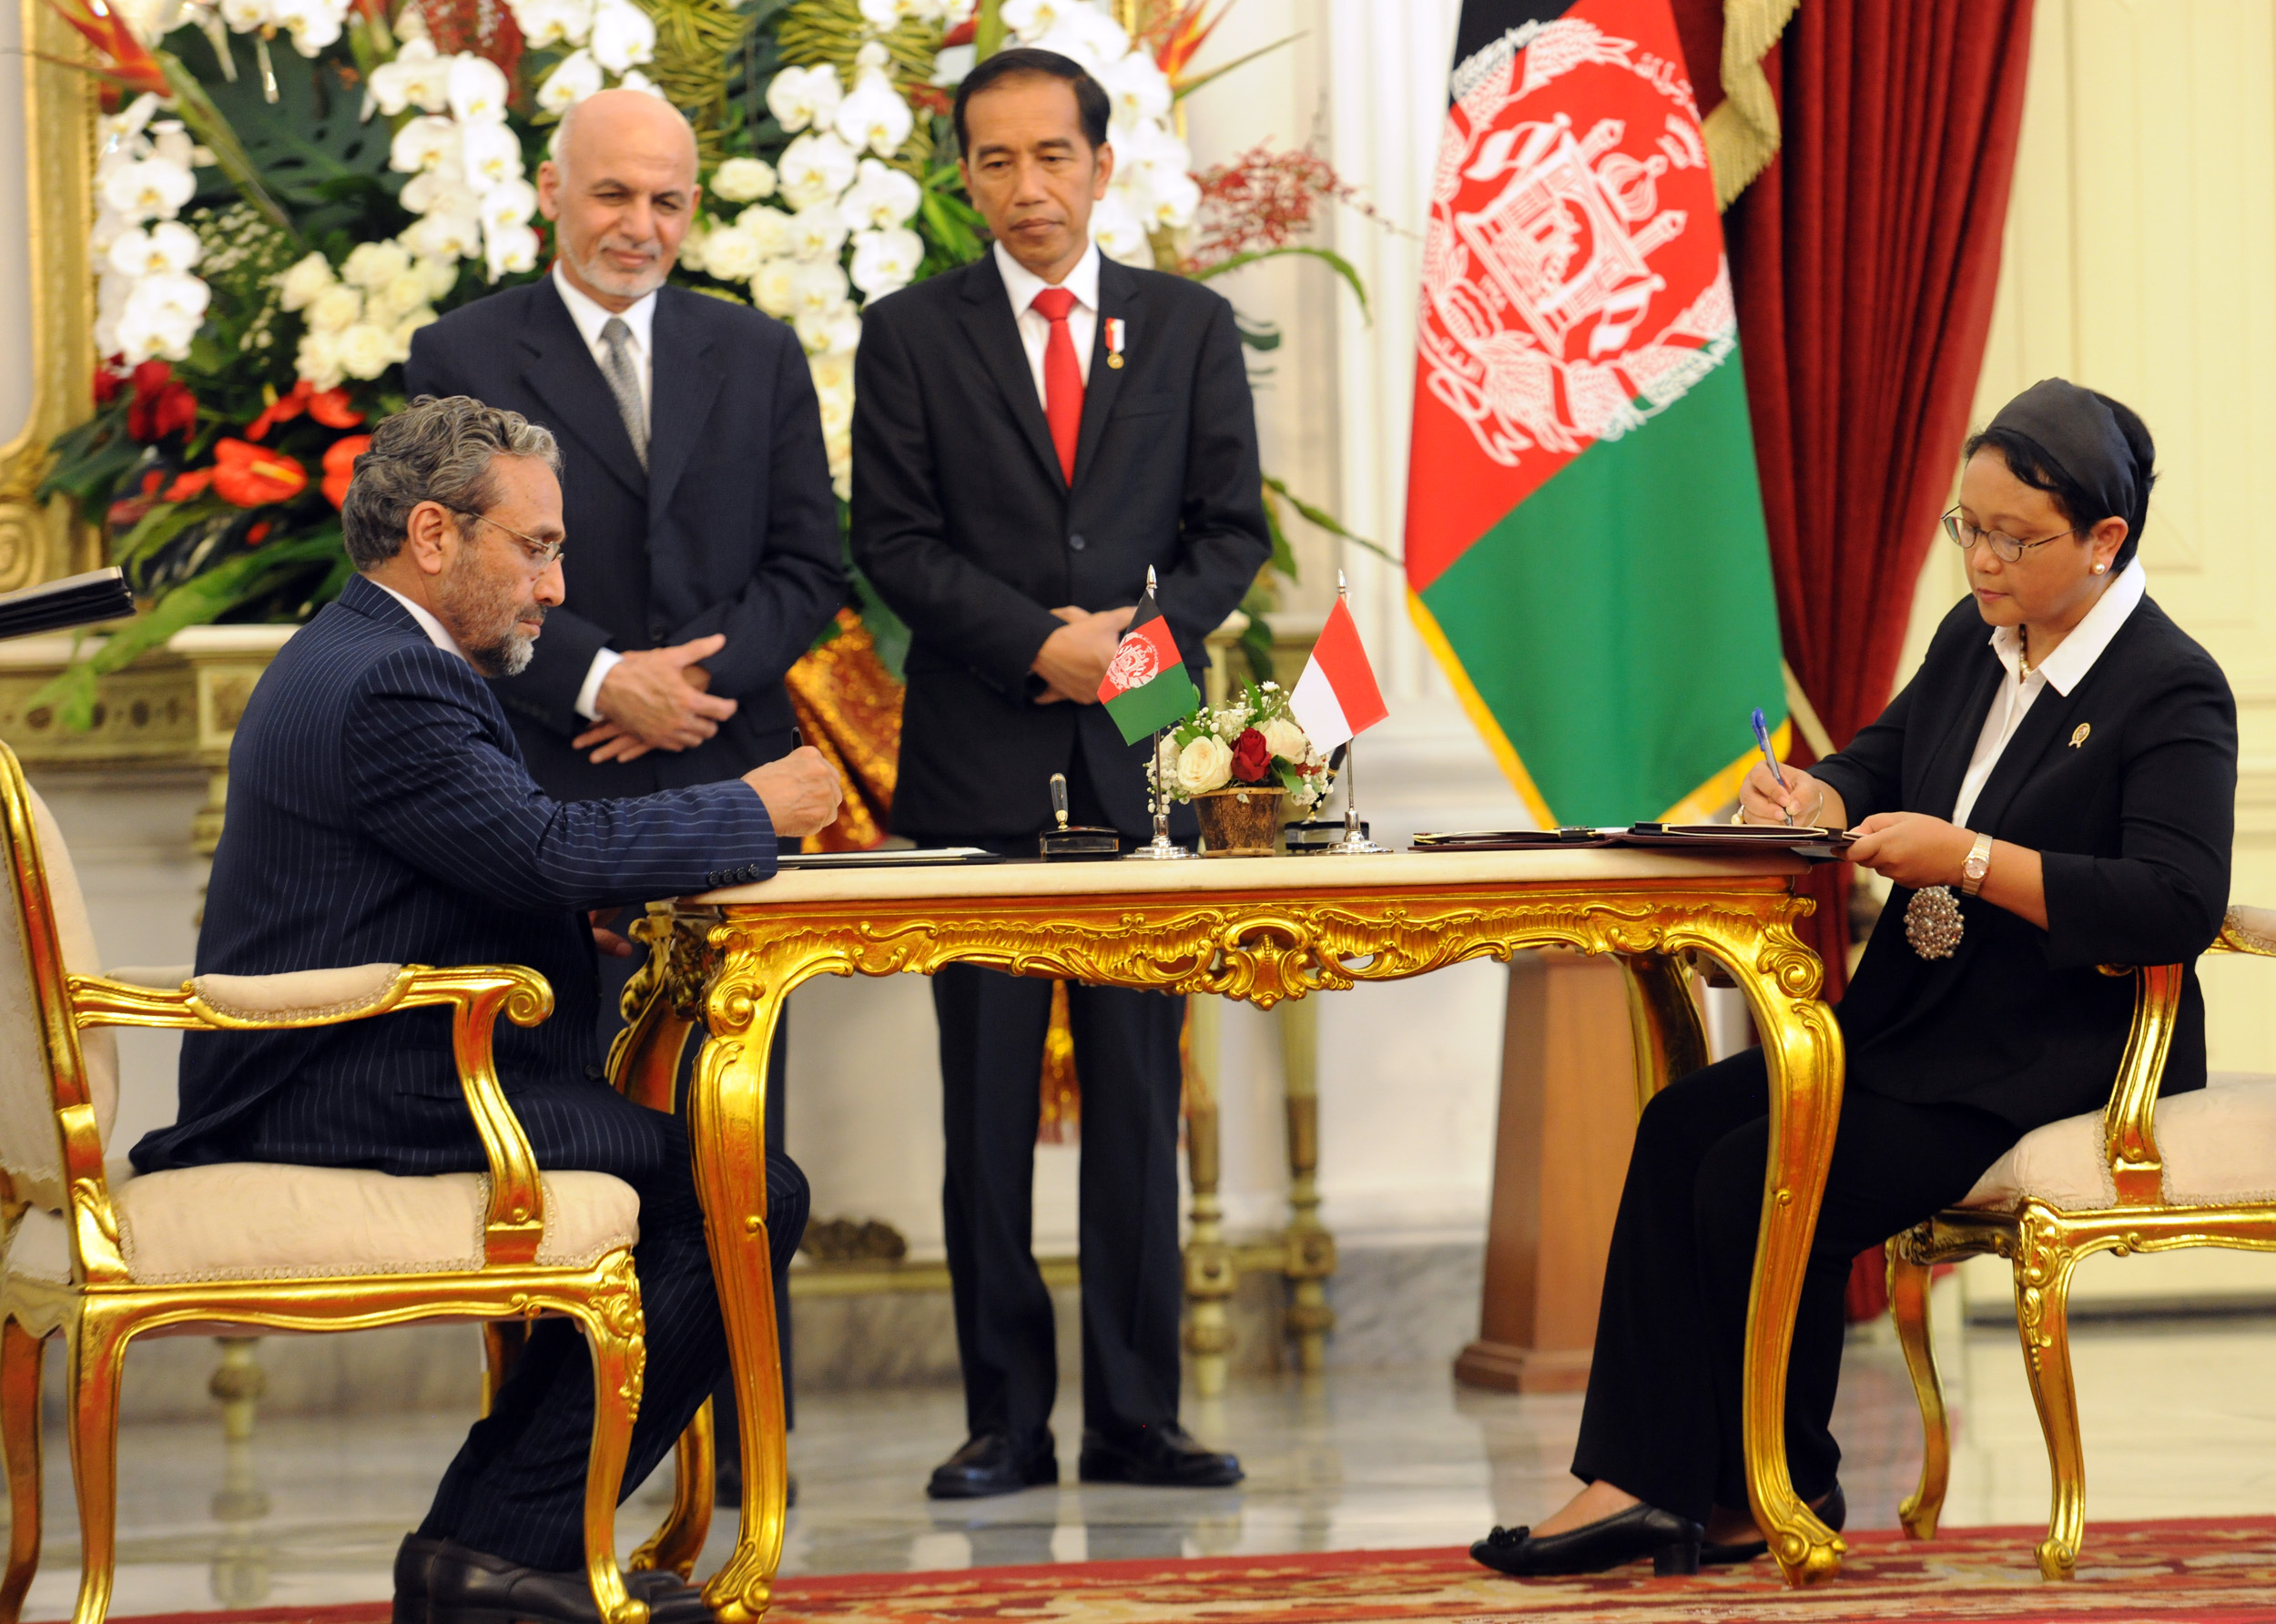 President Jokowi and President of Afghanistan Mohammad Ashraf Ghani witness the signing of MoU by Indonesian Minister of Foreign Affairs Retno Marsudi and Afghan Minister of Economy Abdul Sattar Murad, at the State Palace, Jakarta, Wednesday (5/4) (Photo: Rahmat/PR)